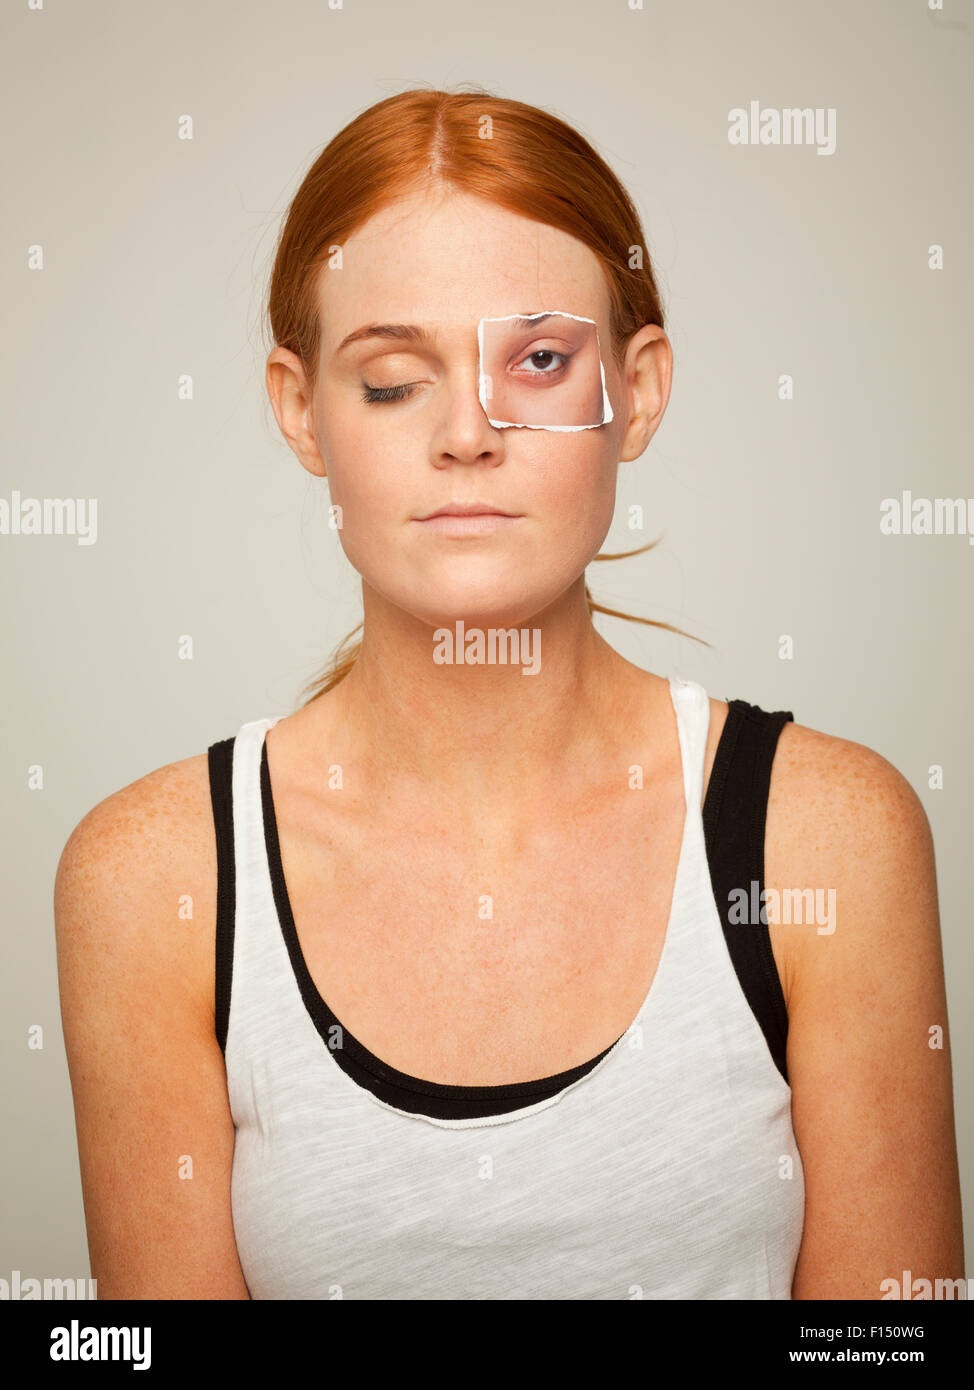 Studio shot of young woman wearing sleeveless top with artificial paper eye - Stock Image